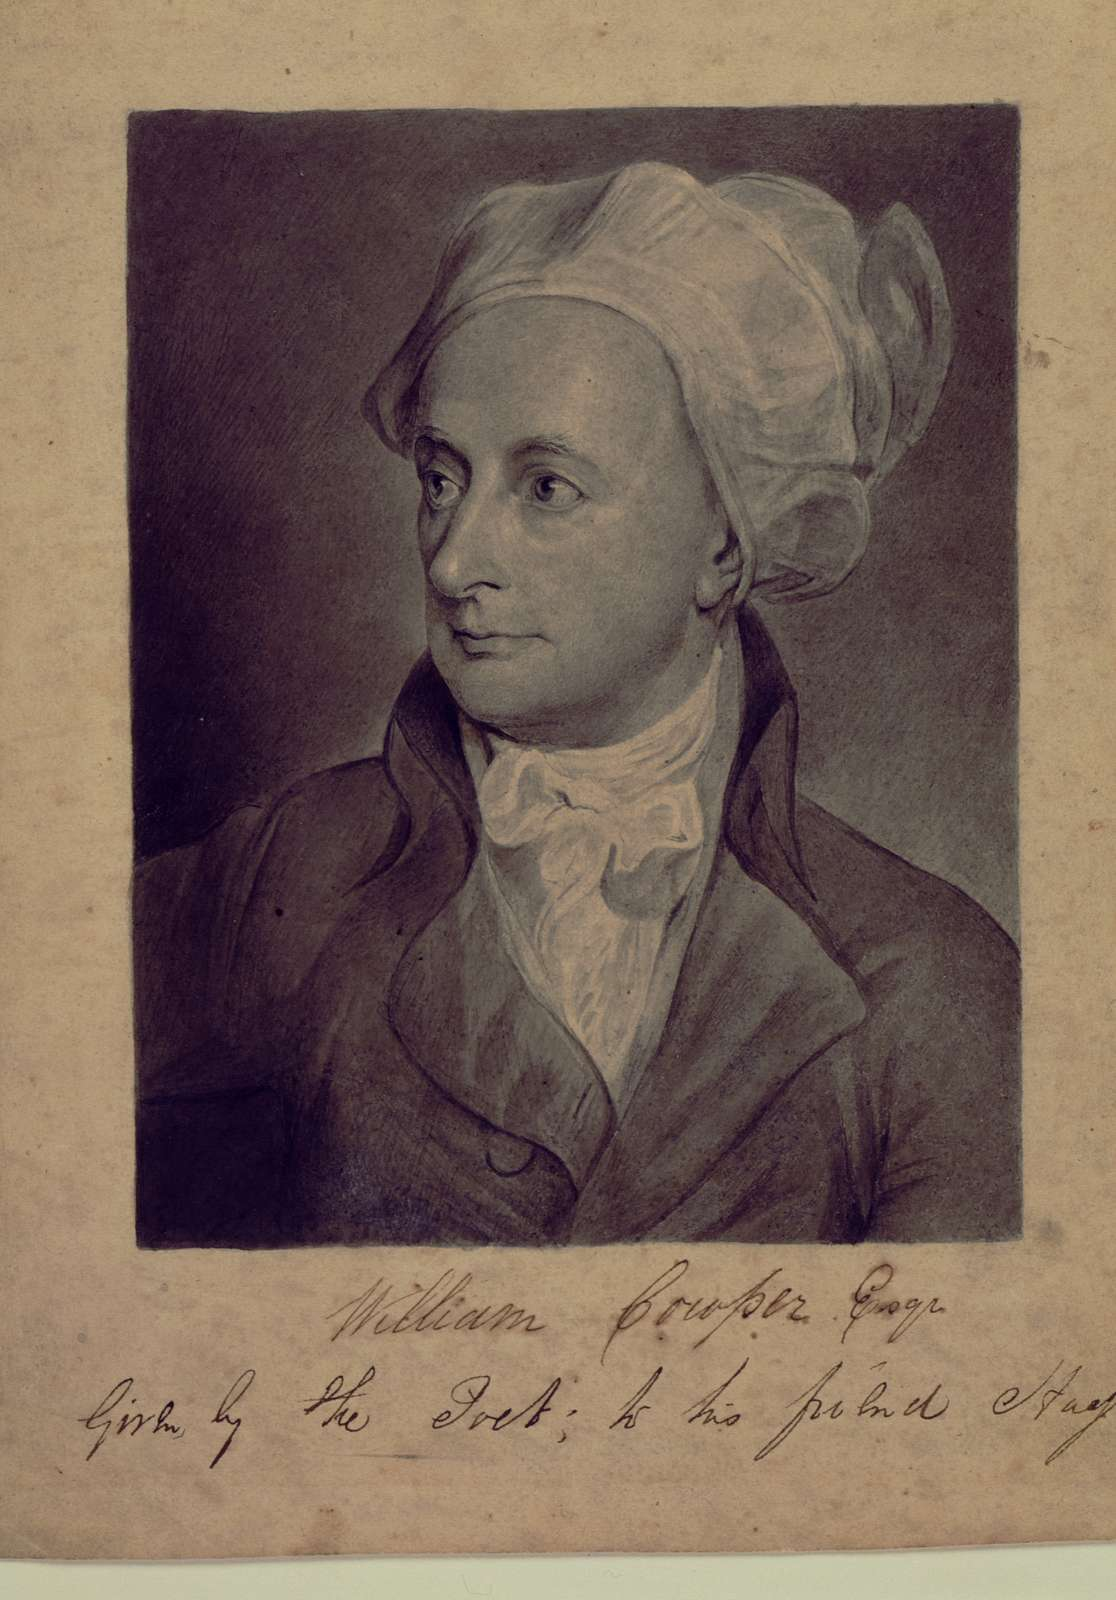 [Portrait of William Cowper after George Romney.n.p., ca 1802?]